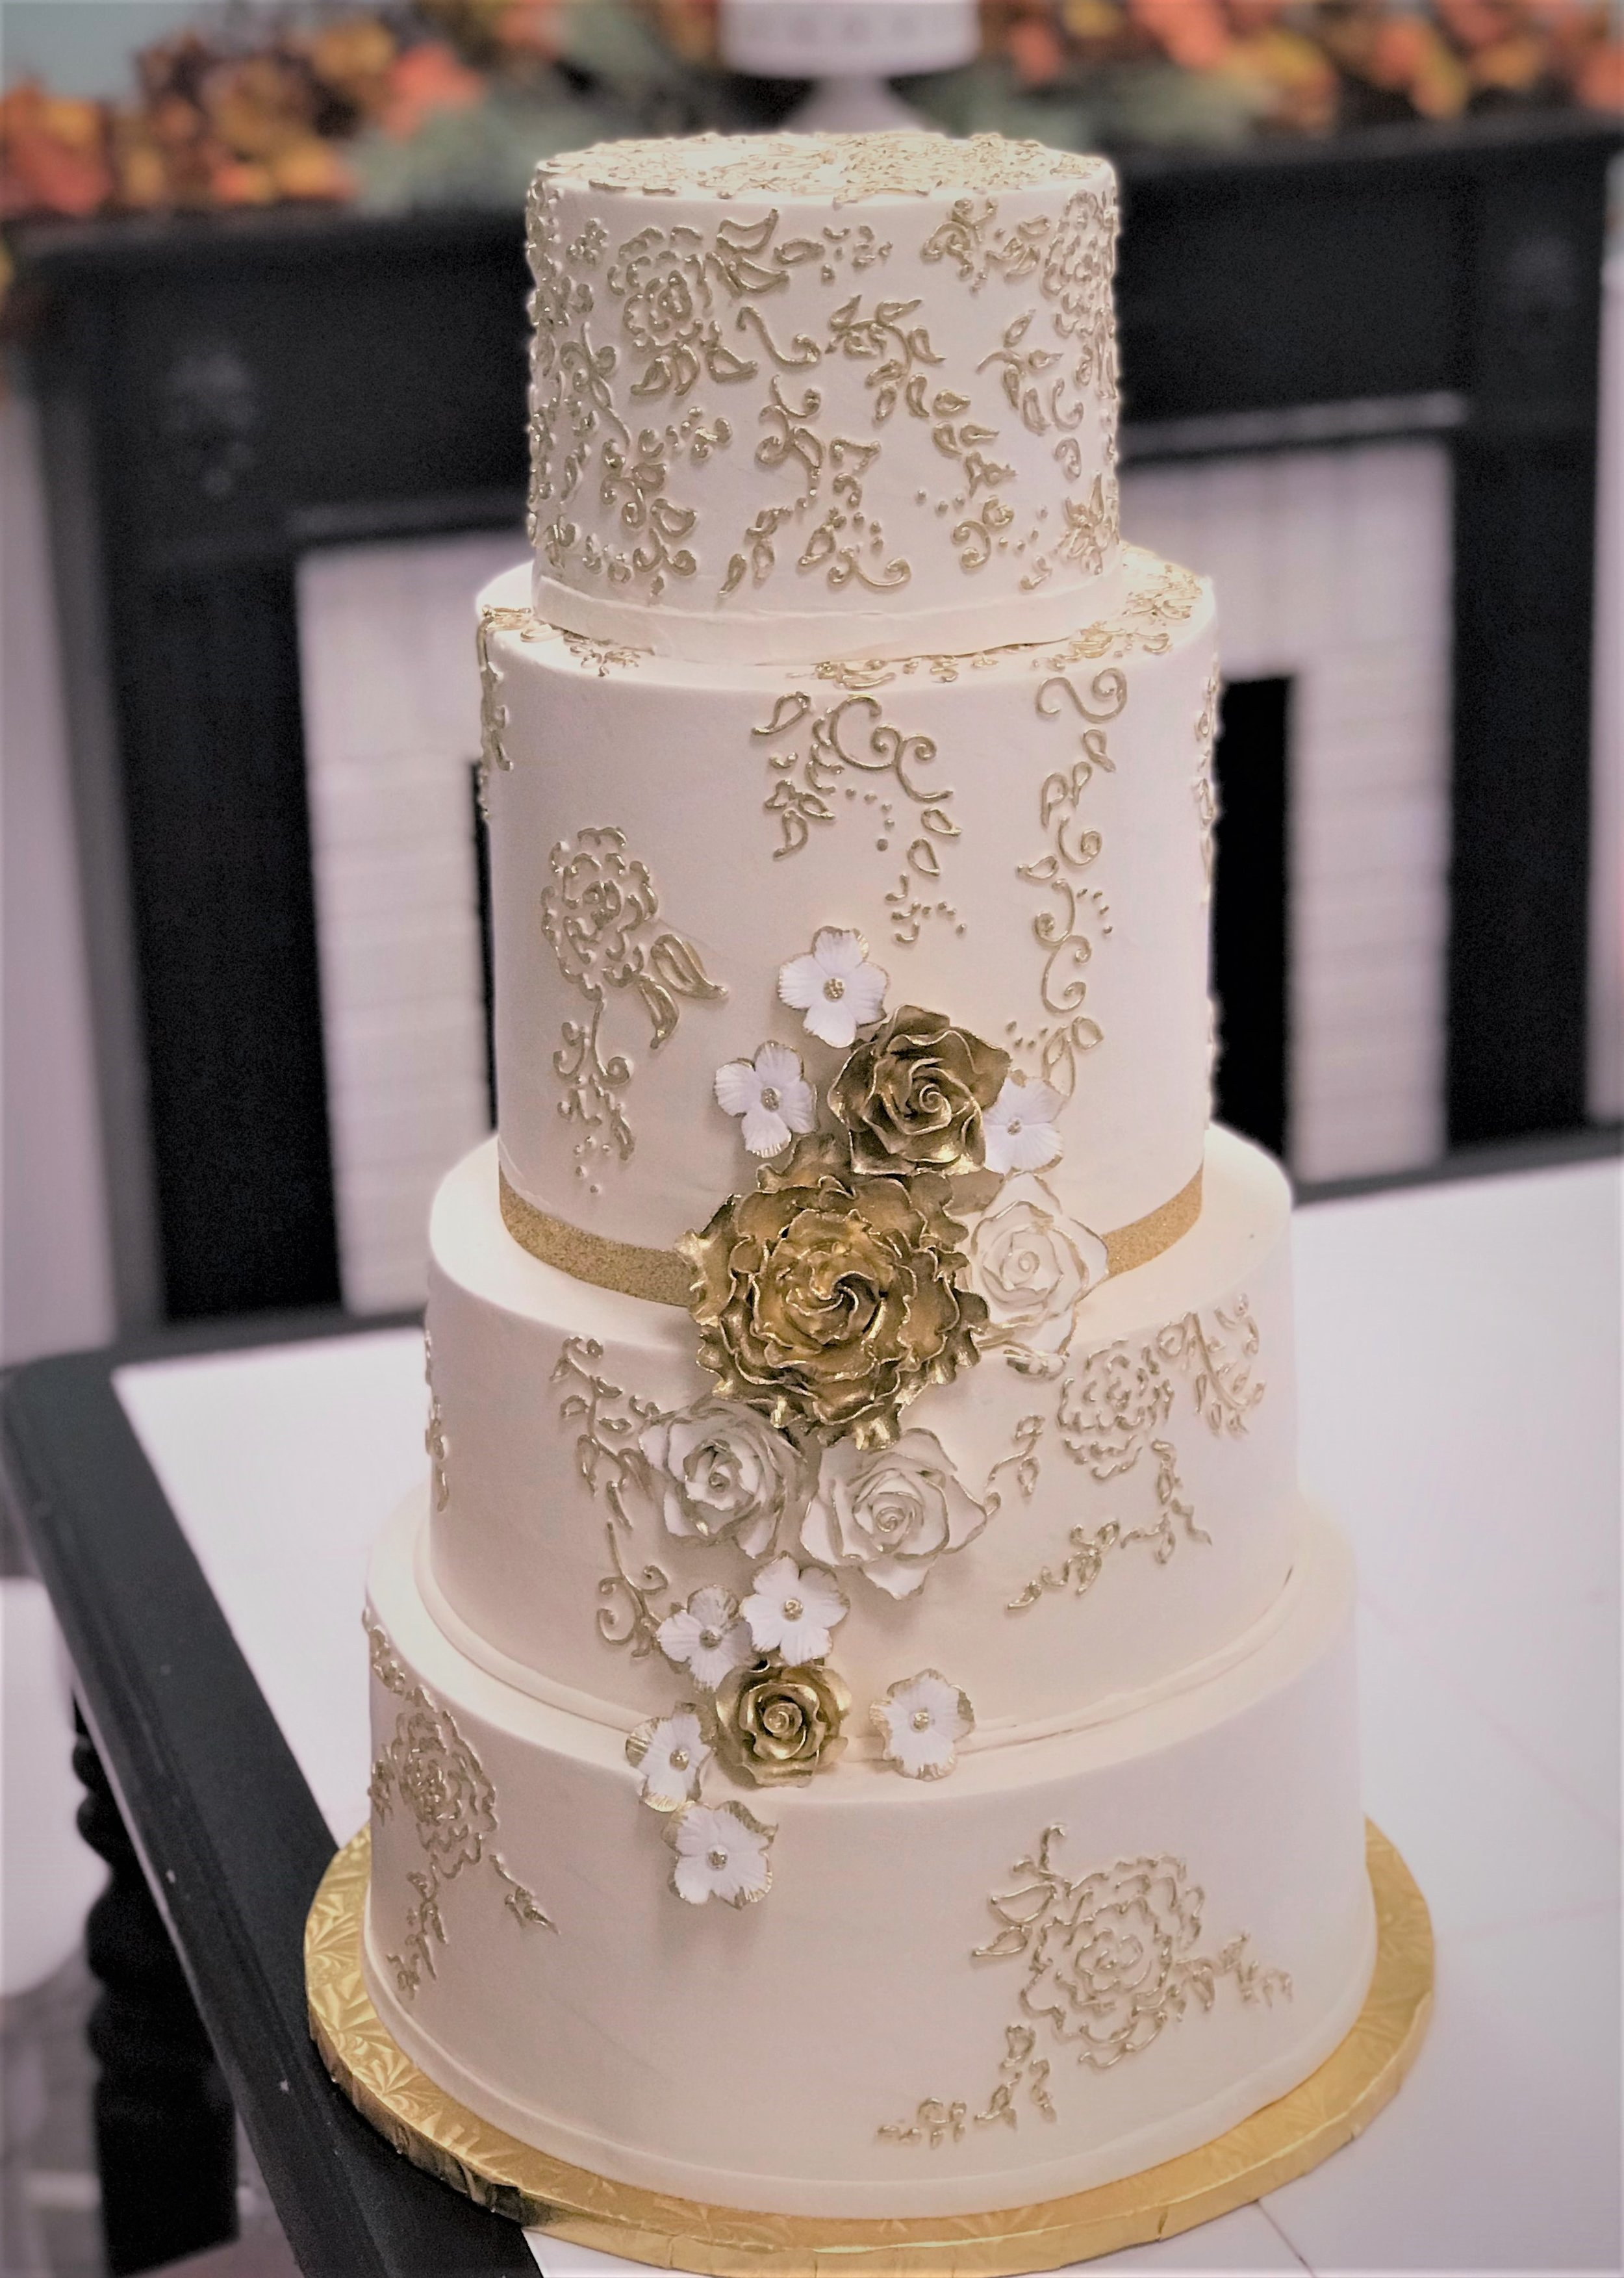 gold filigree and flower wedding cake.jpg